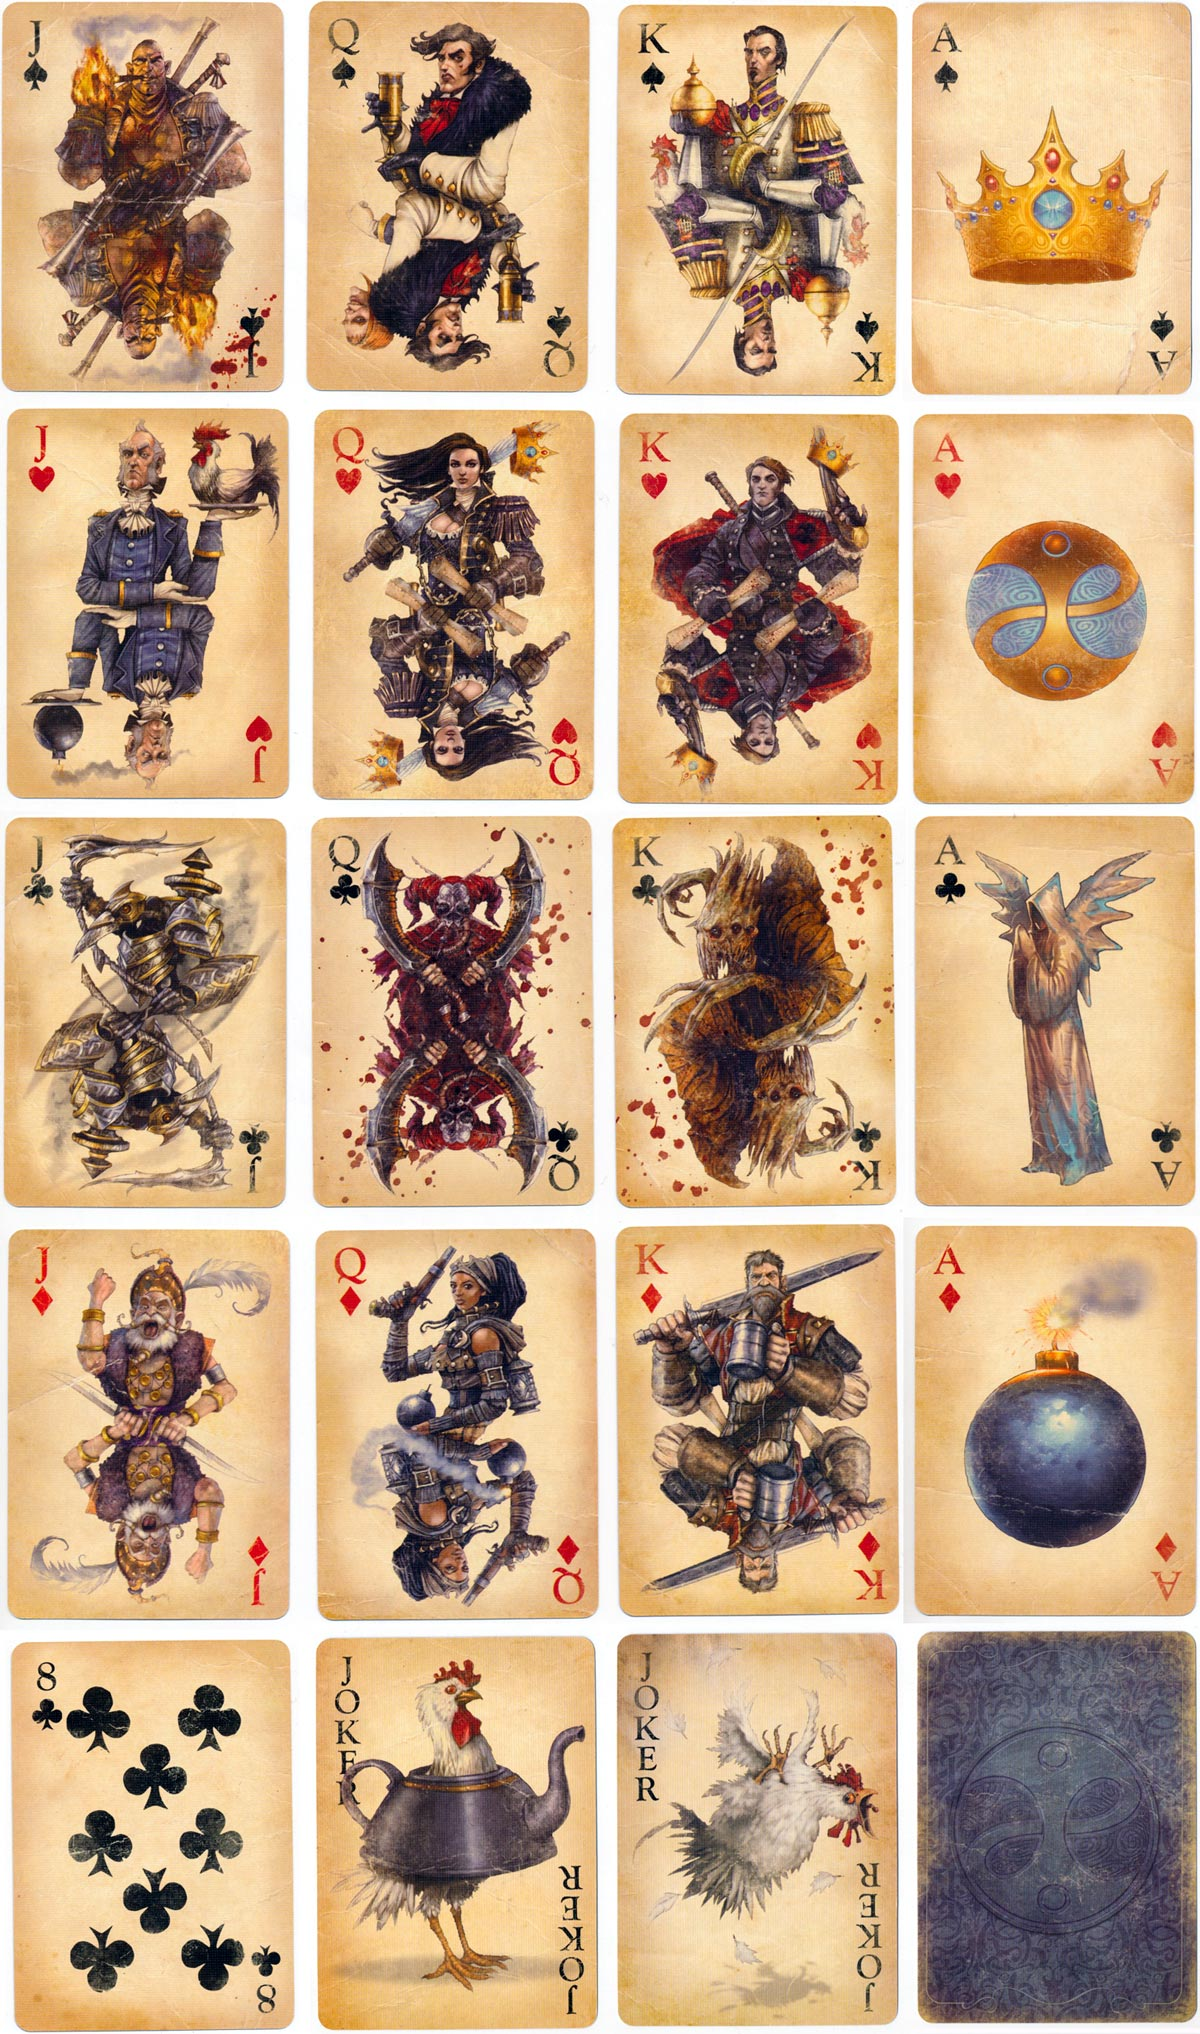 """Fable III"" playing cards created by Lionhead Studios depicting characters in the video game published by Microsoft in 2010"